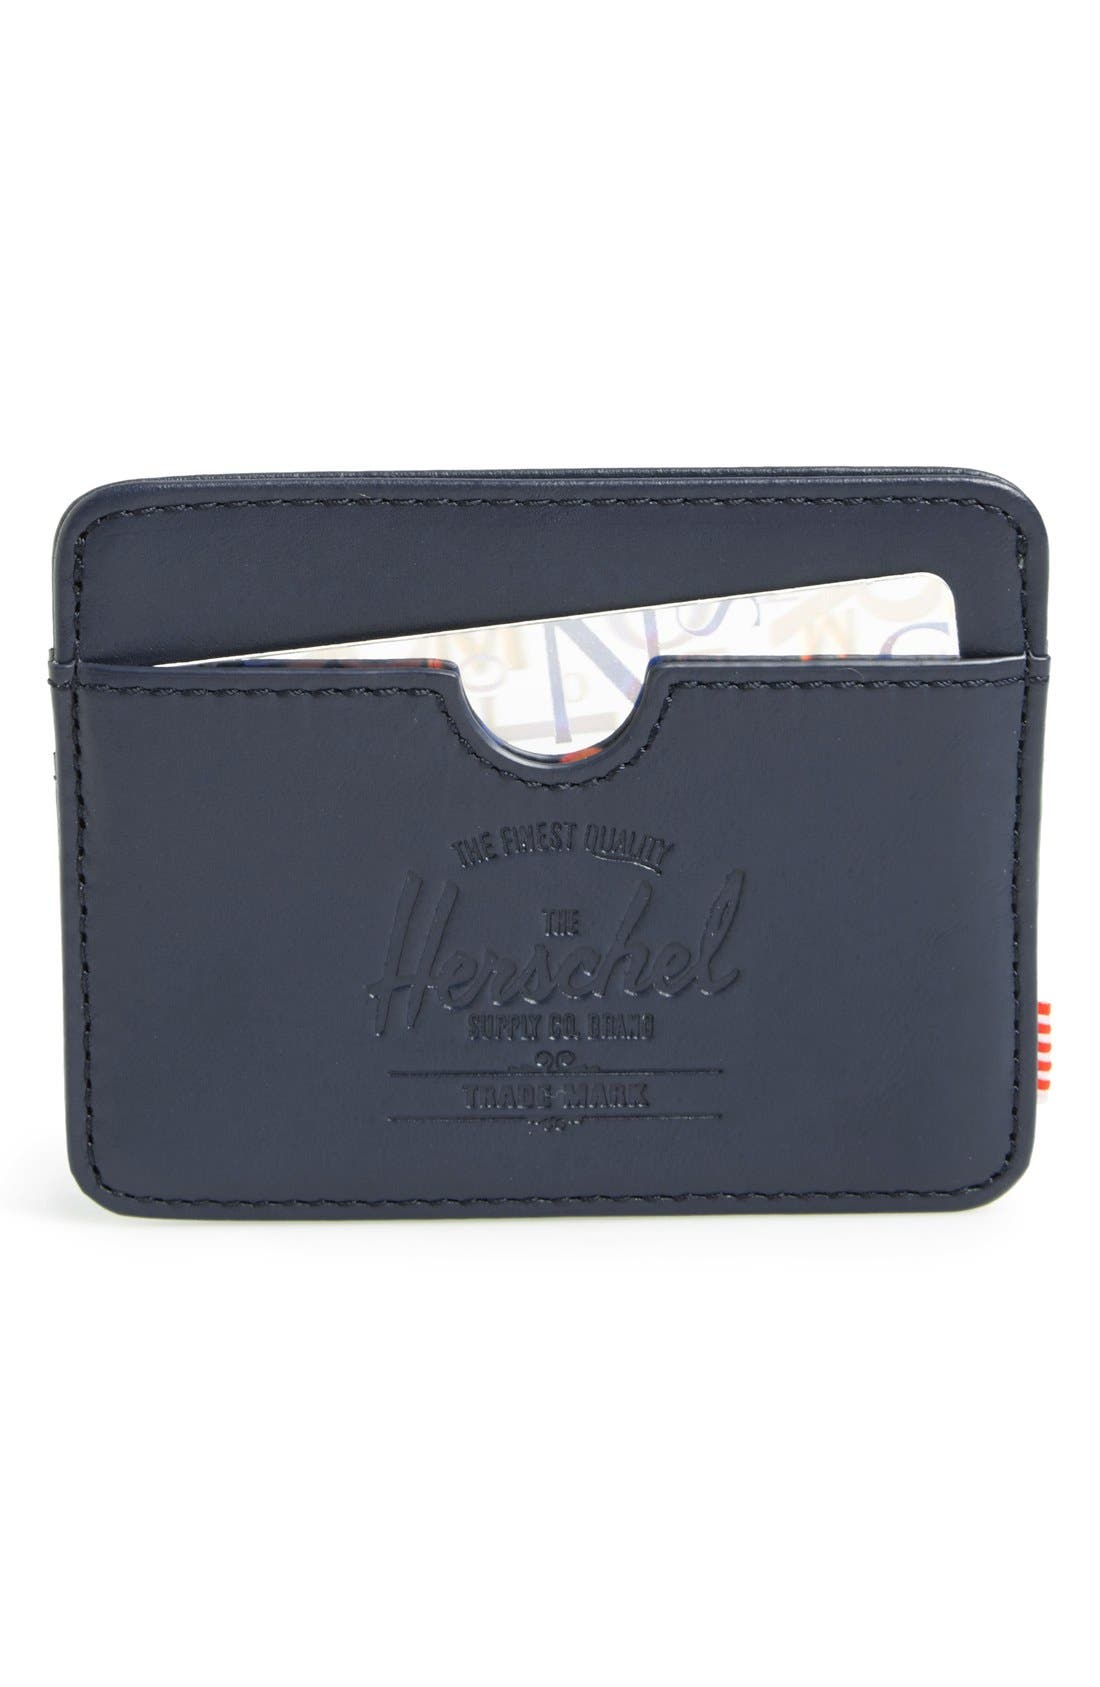 Main Image - Herschel Supply Co. 'Charlie' Leather Card Case